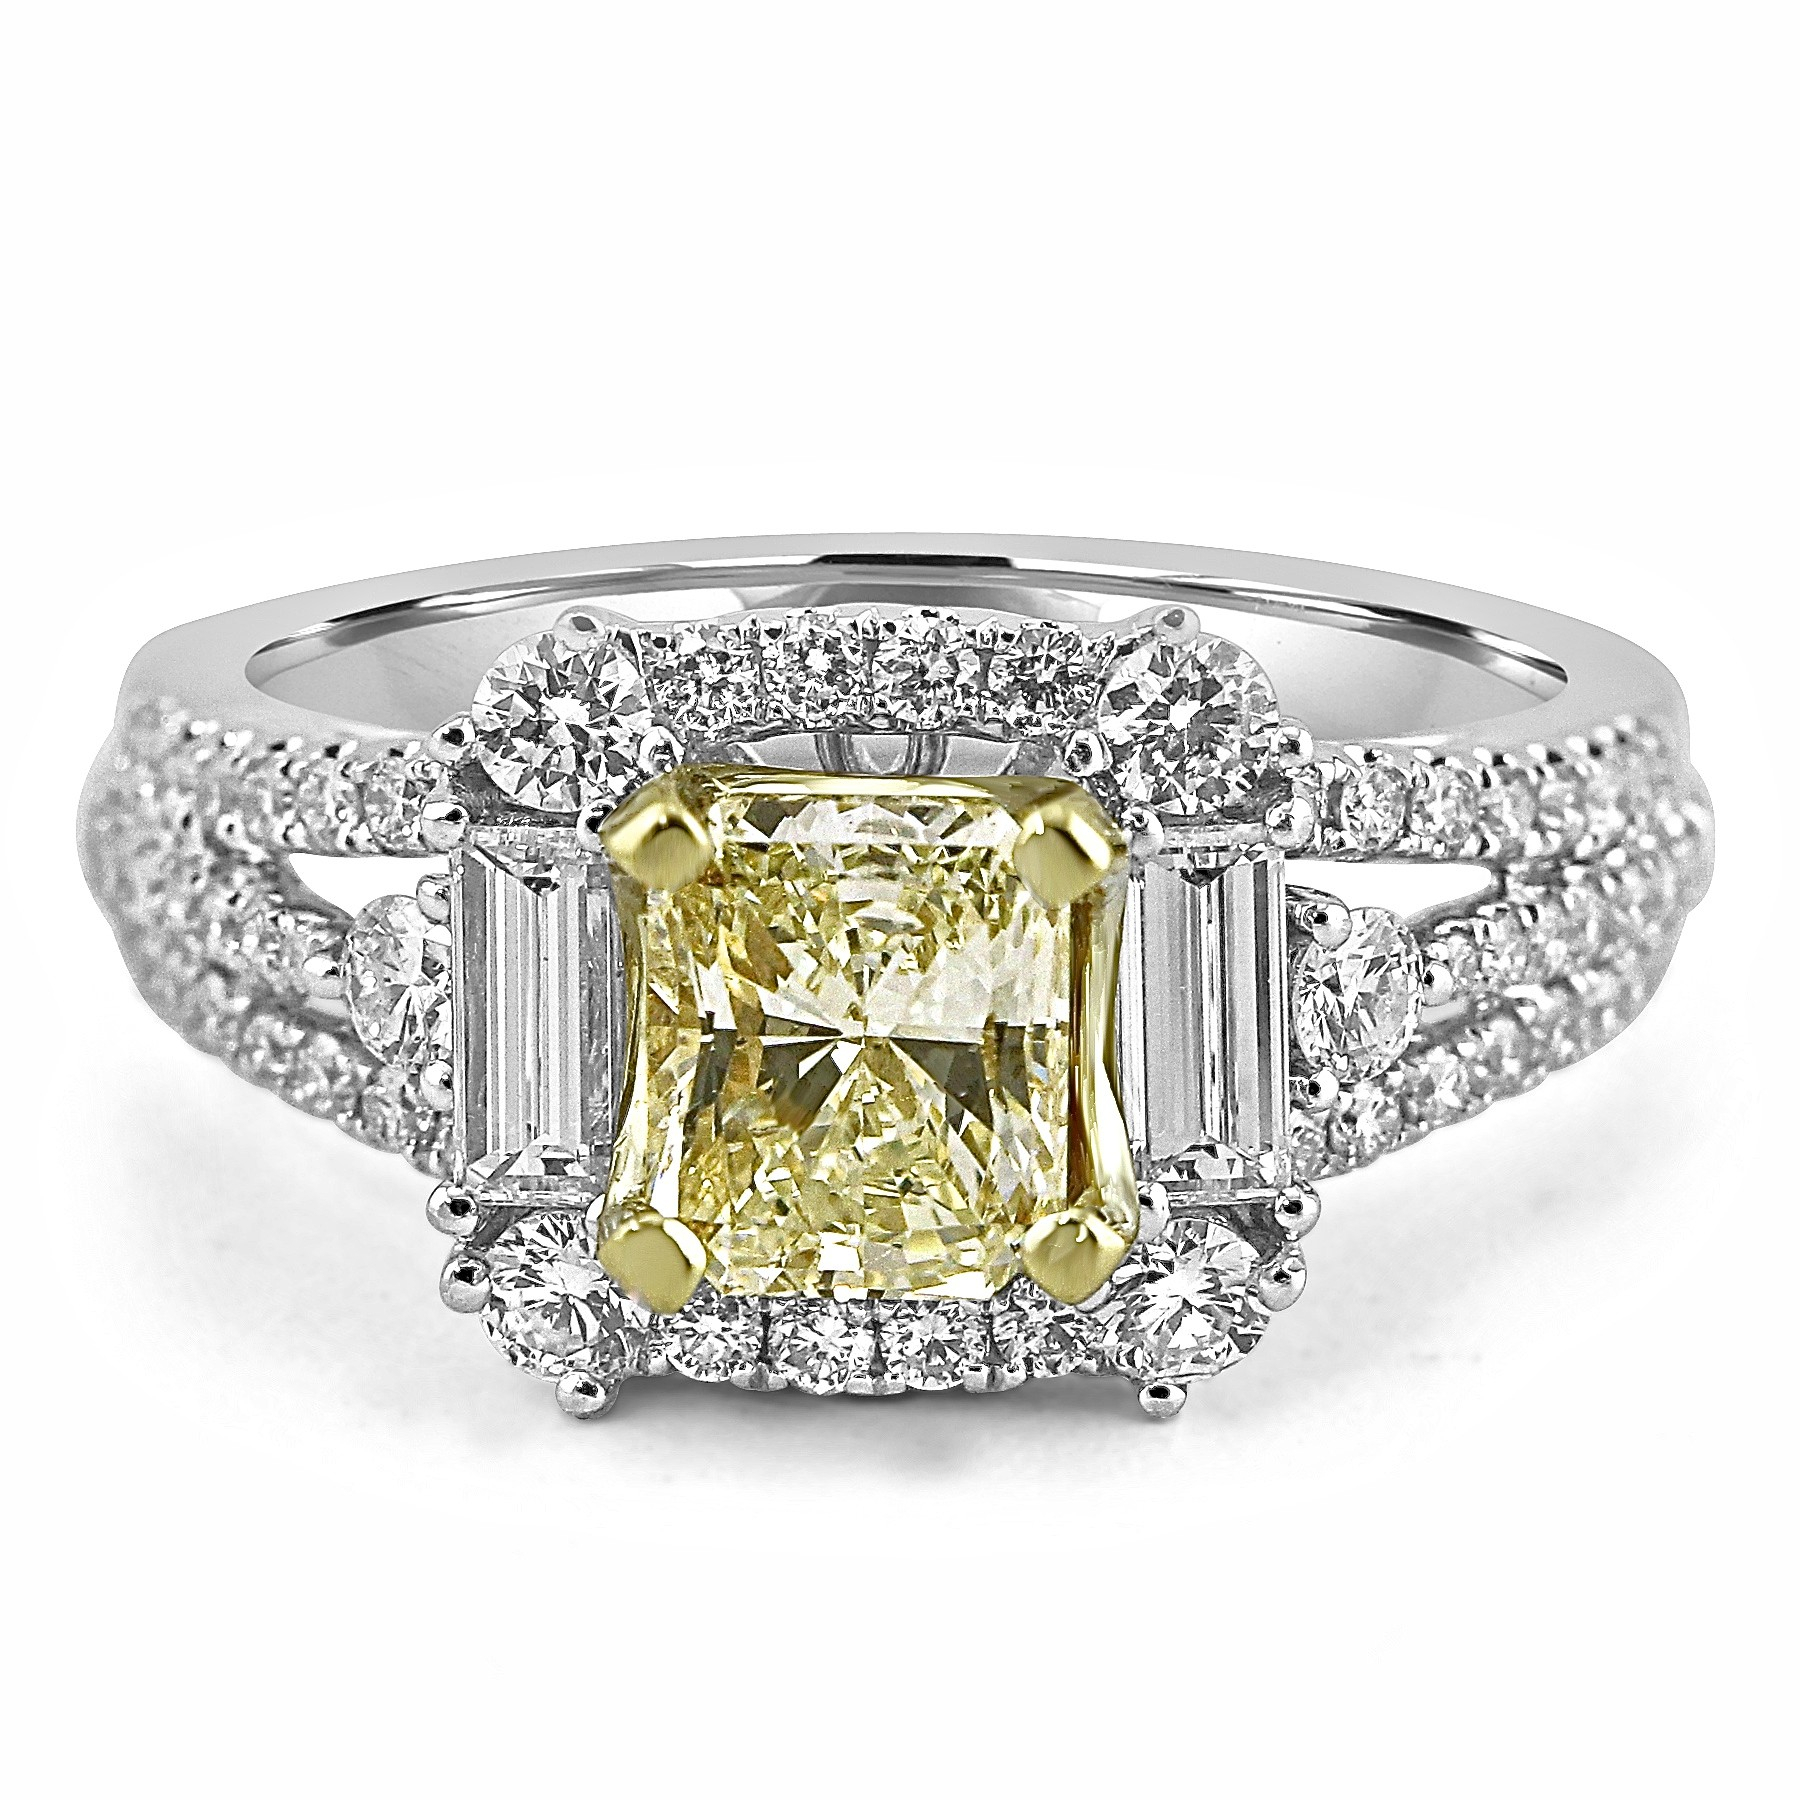 18k W/g Radiant Cut Fancy Yellow Diamond Engagement Ring Intended For Radiant Yellow Diamond Rings (View 14 of 25)